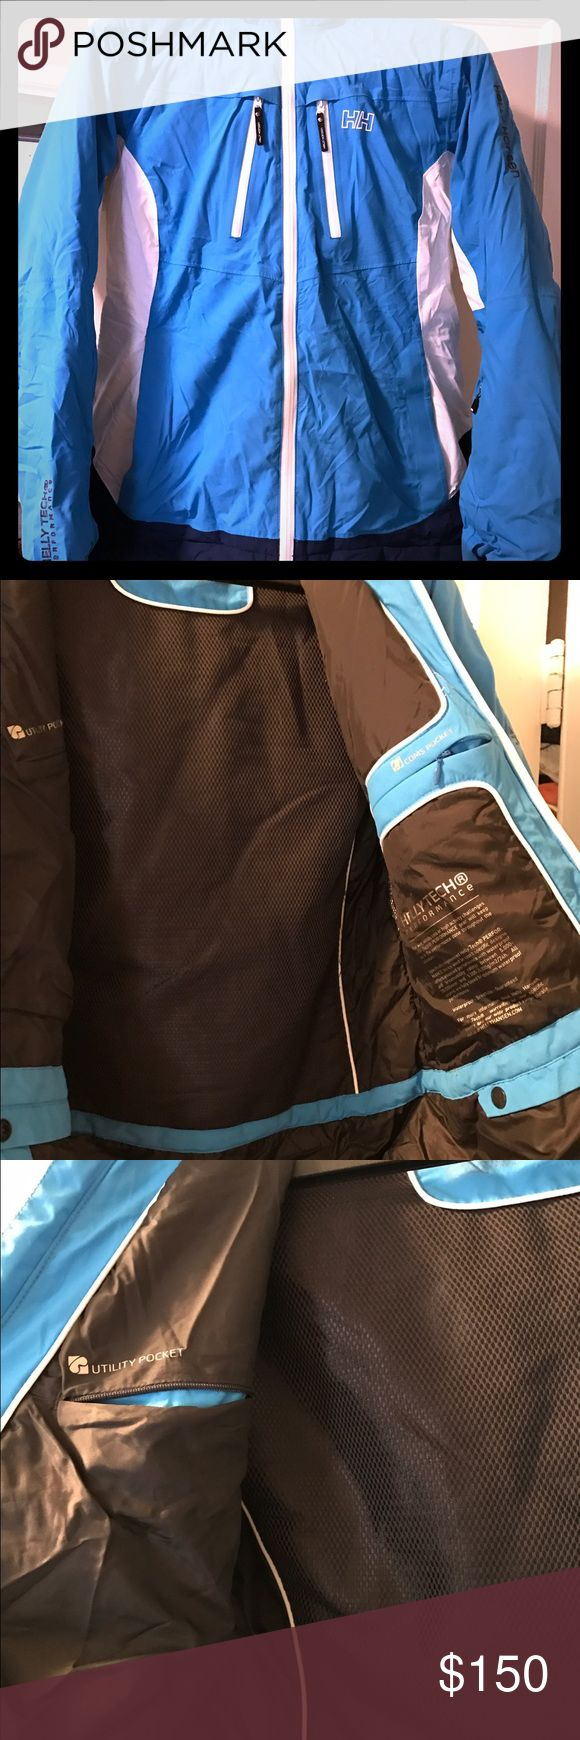 """Helly Hansen ski jacket Insulated, waterproof with Helly tech. Beautiful sky blue color. Covers a helmet. I tend to buy my ski jackets a couple sizes up because that's my style so this could fit a range of sizes. I let my friend who is 5'9"""" (size 8) wear it once and it fit her perfectly. I am 5'6"""" and in clothes wear a 0-2. I love this jacket because it's amazing quality but it doesn't match any of my ski pants! Helly Hansen Jackets & Coats"""